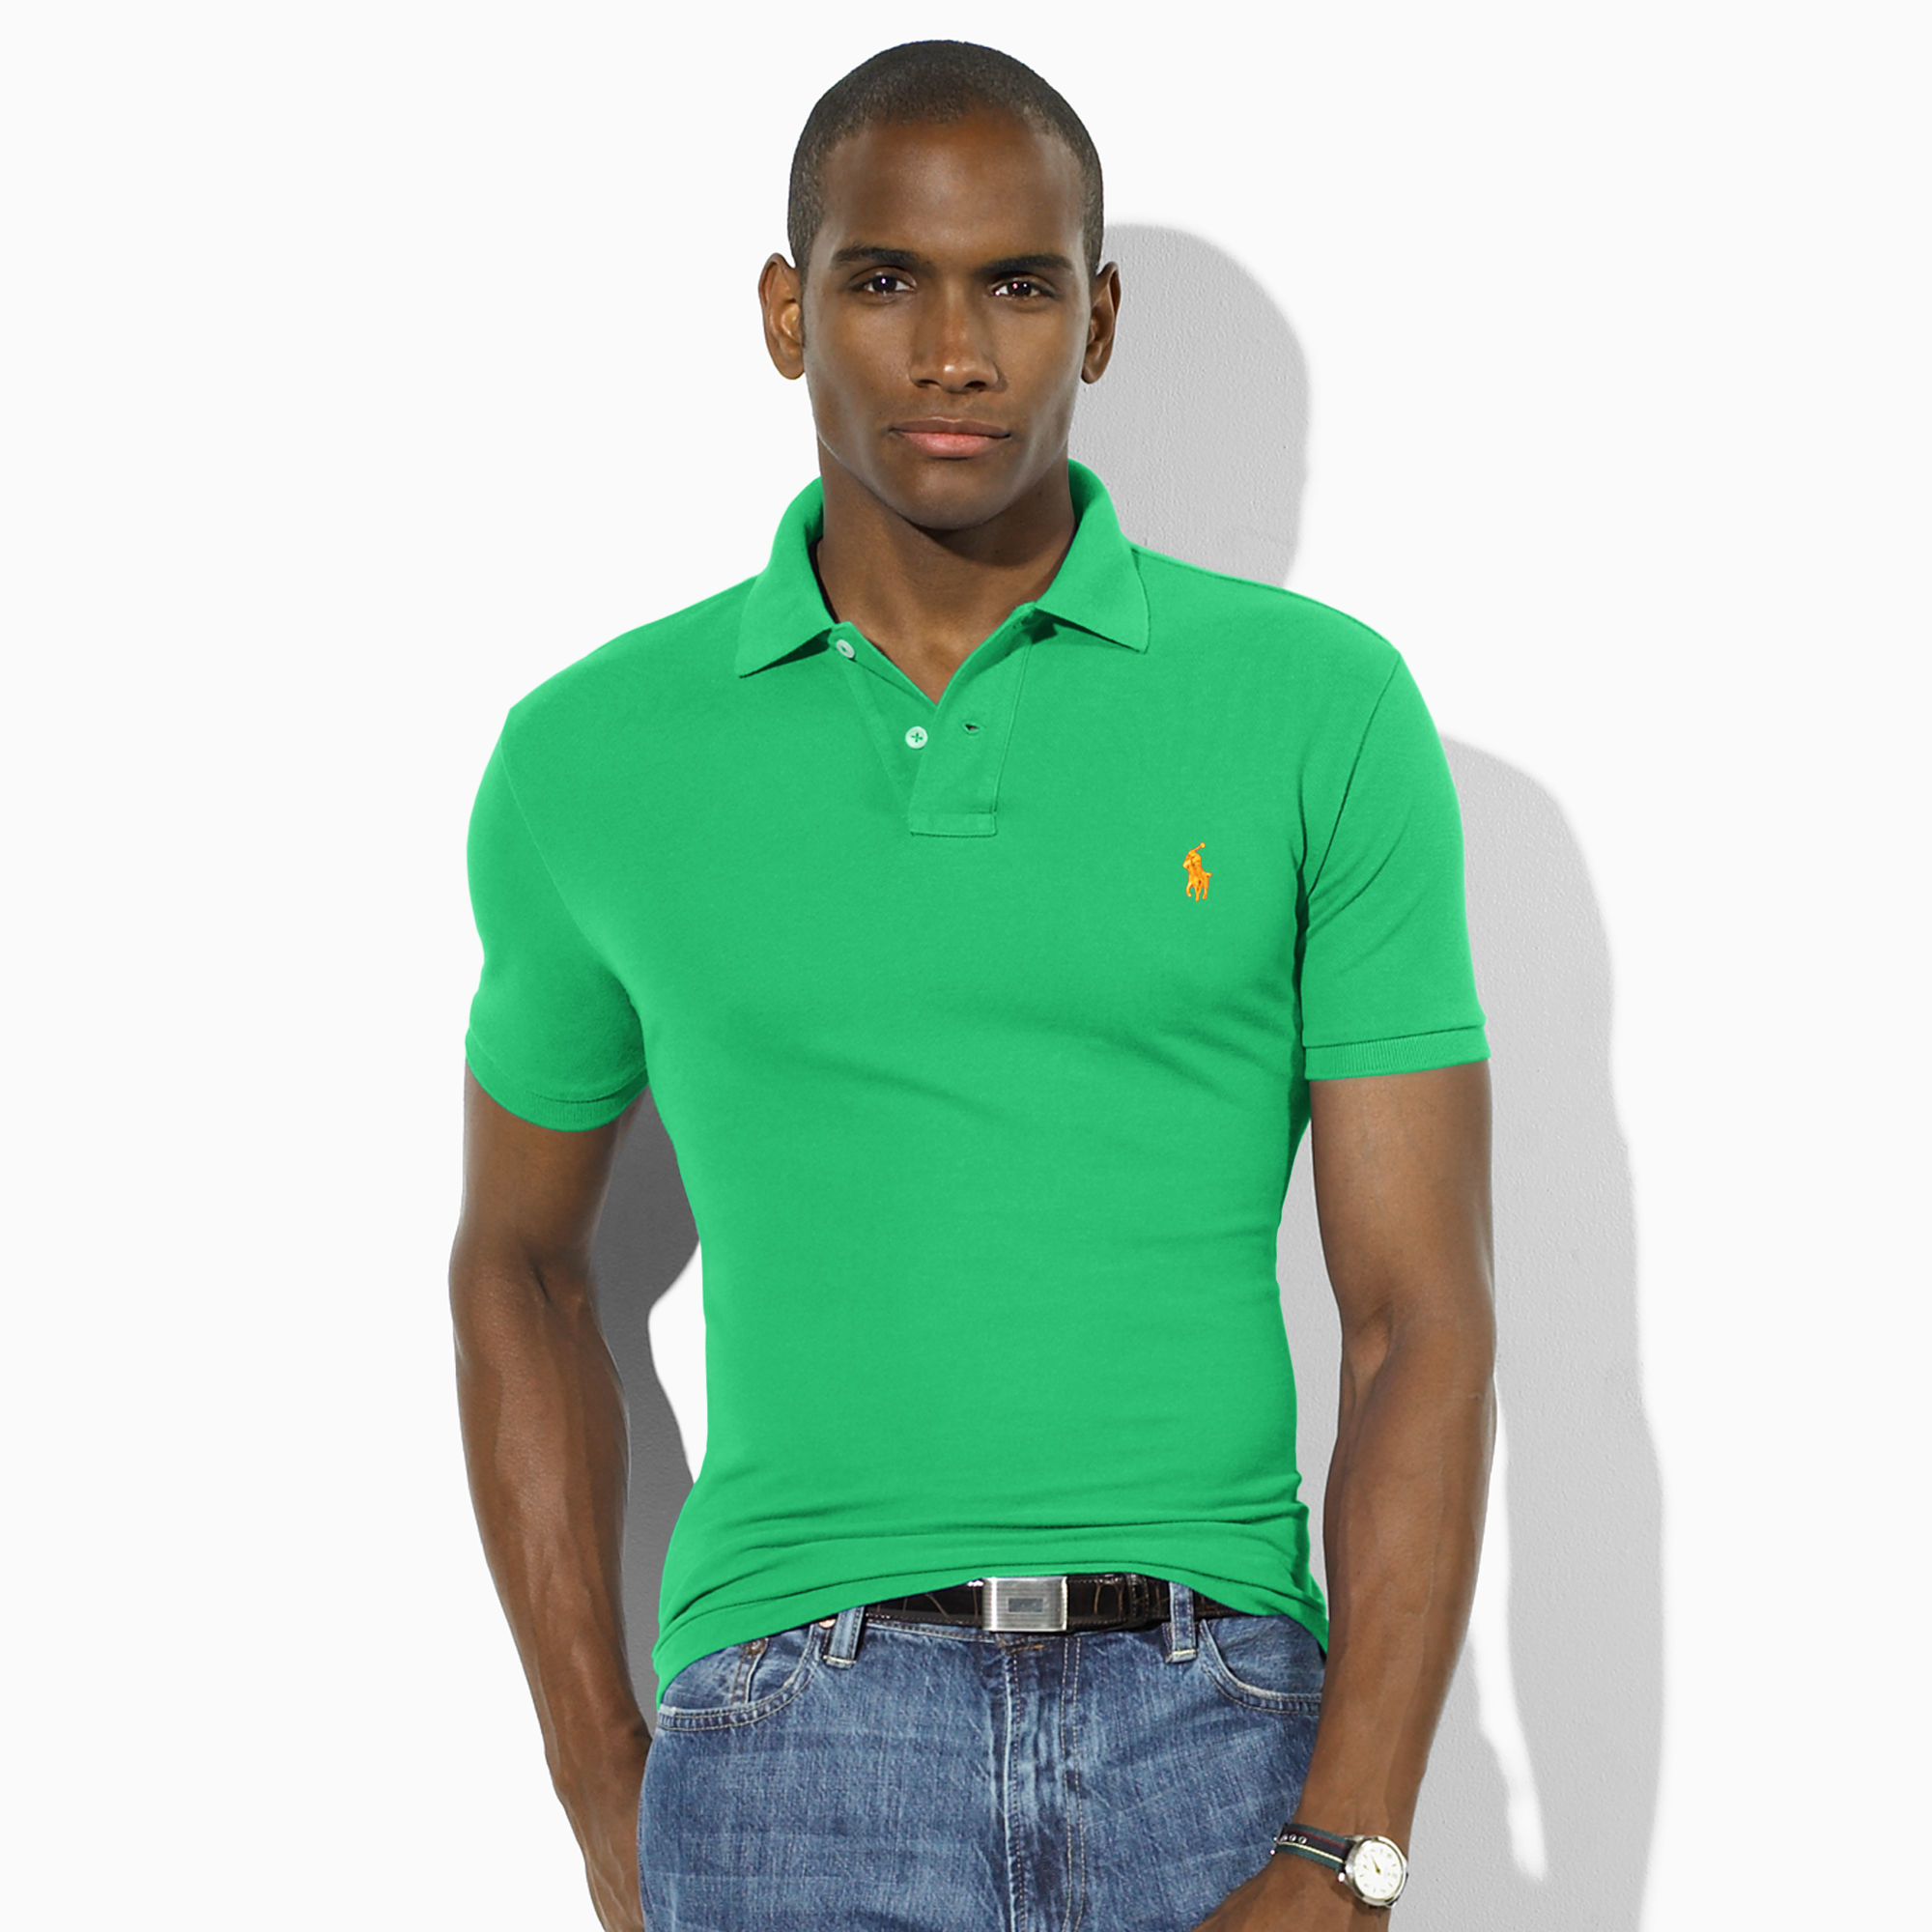 Embroidered Work Polo Shirts